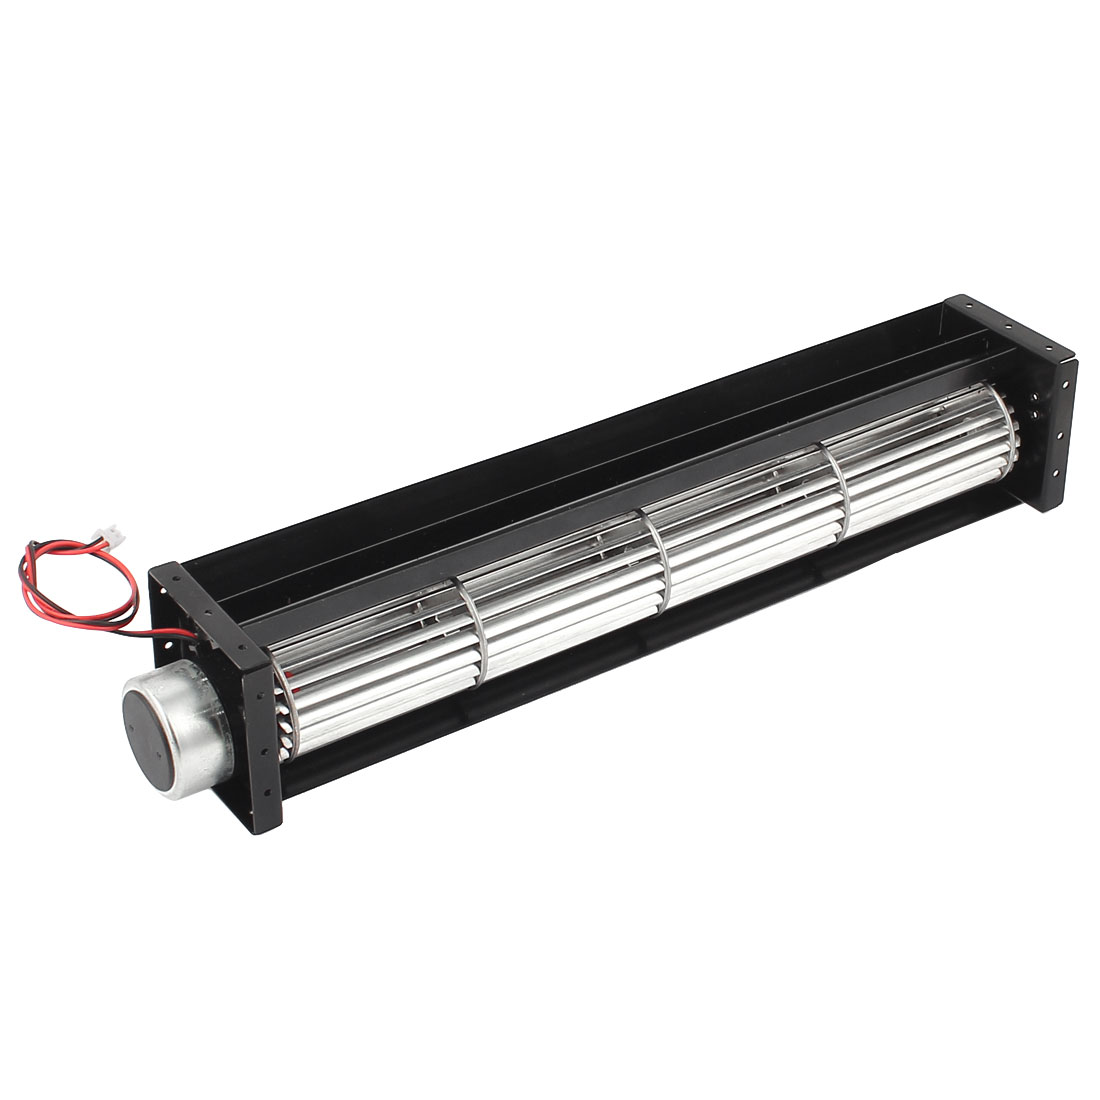 DC 12V 0.30A Cross Flow Cooling Fan Heat Exchanger Amplifier Cool Turbo 40x290mm